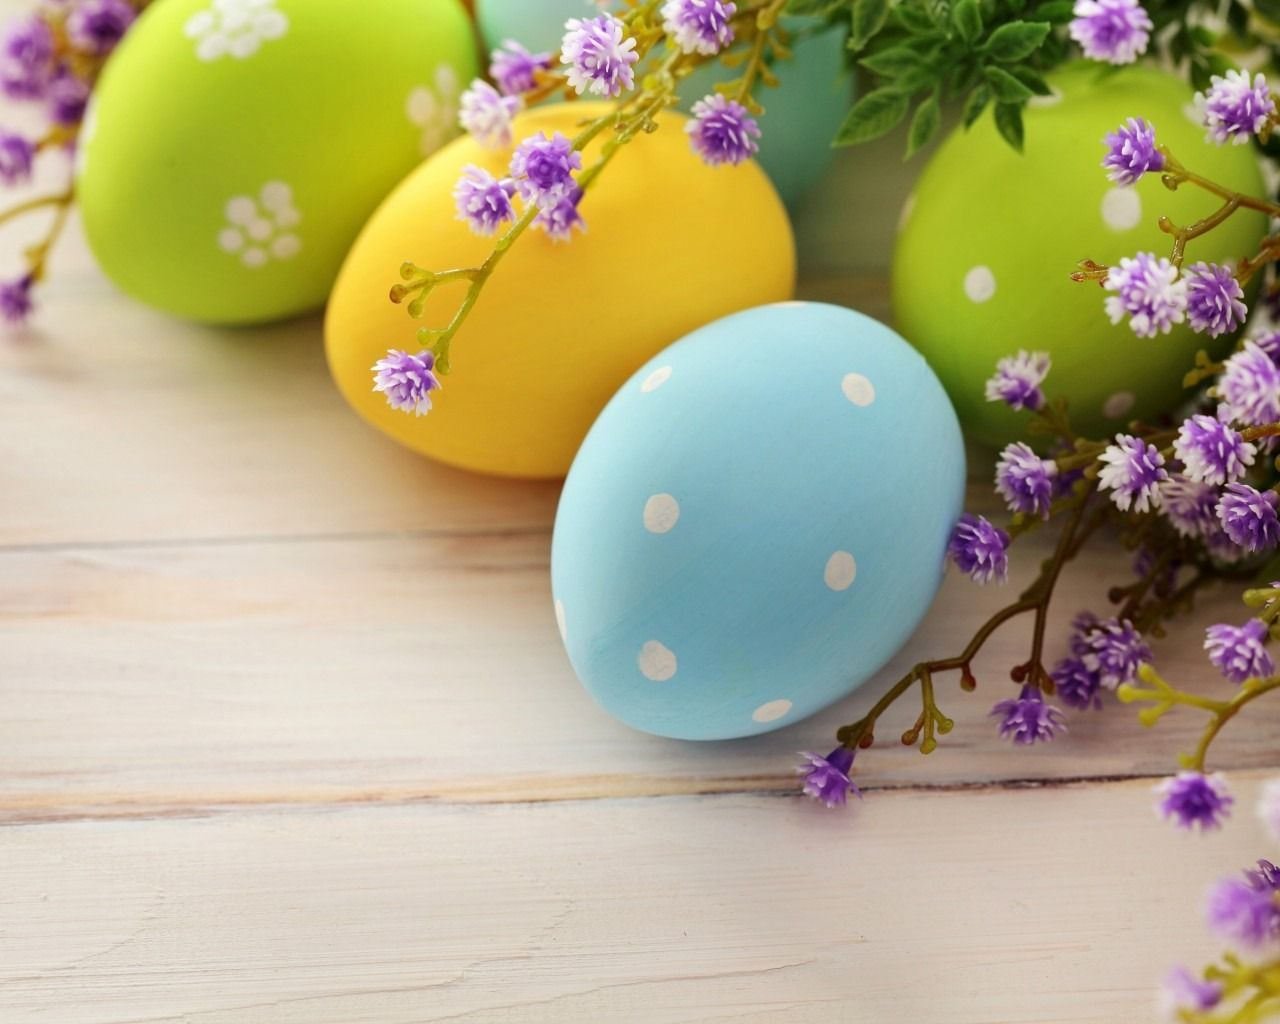 Free Happy And Cute Easter Wallpaper Picasa Pics Store 1280x1024